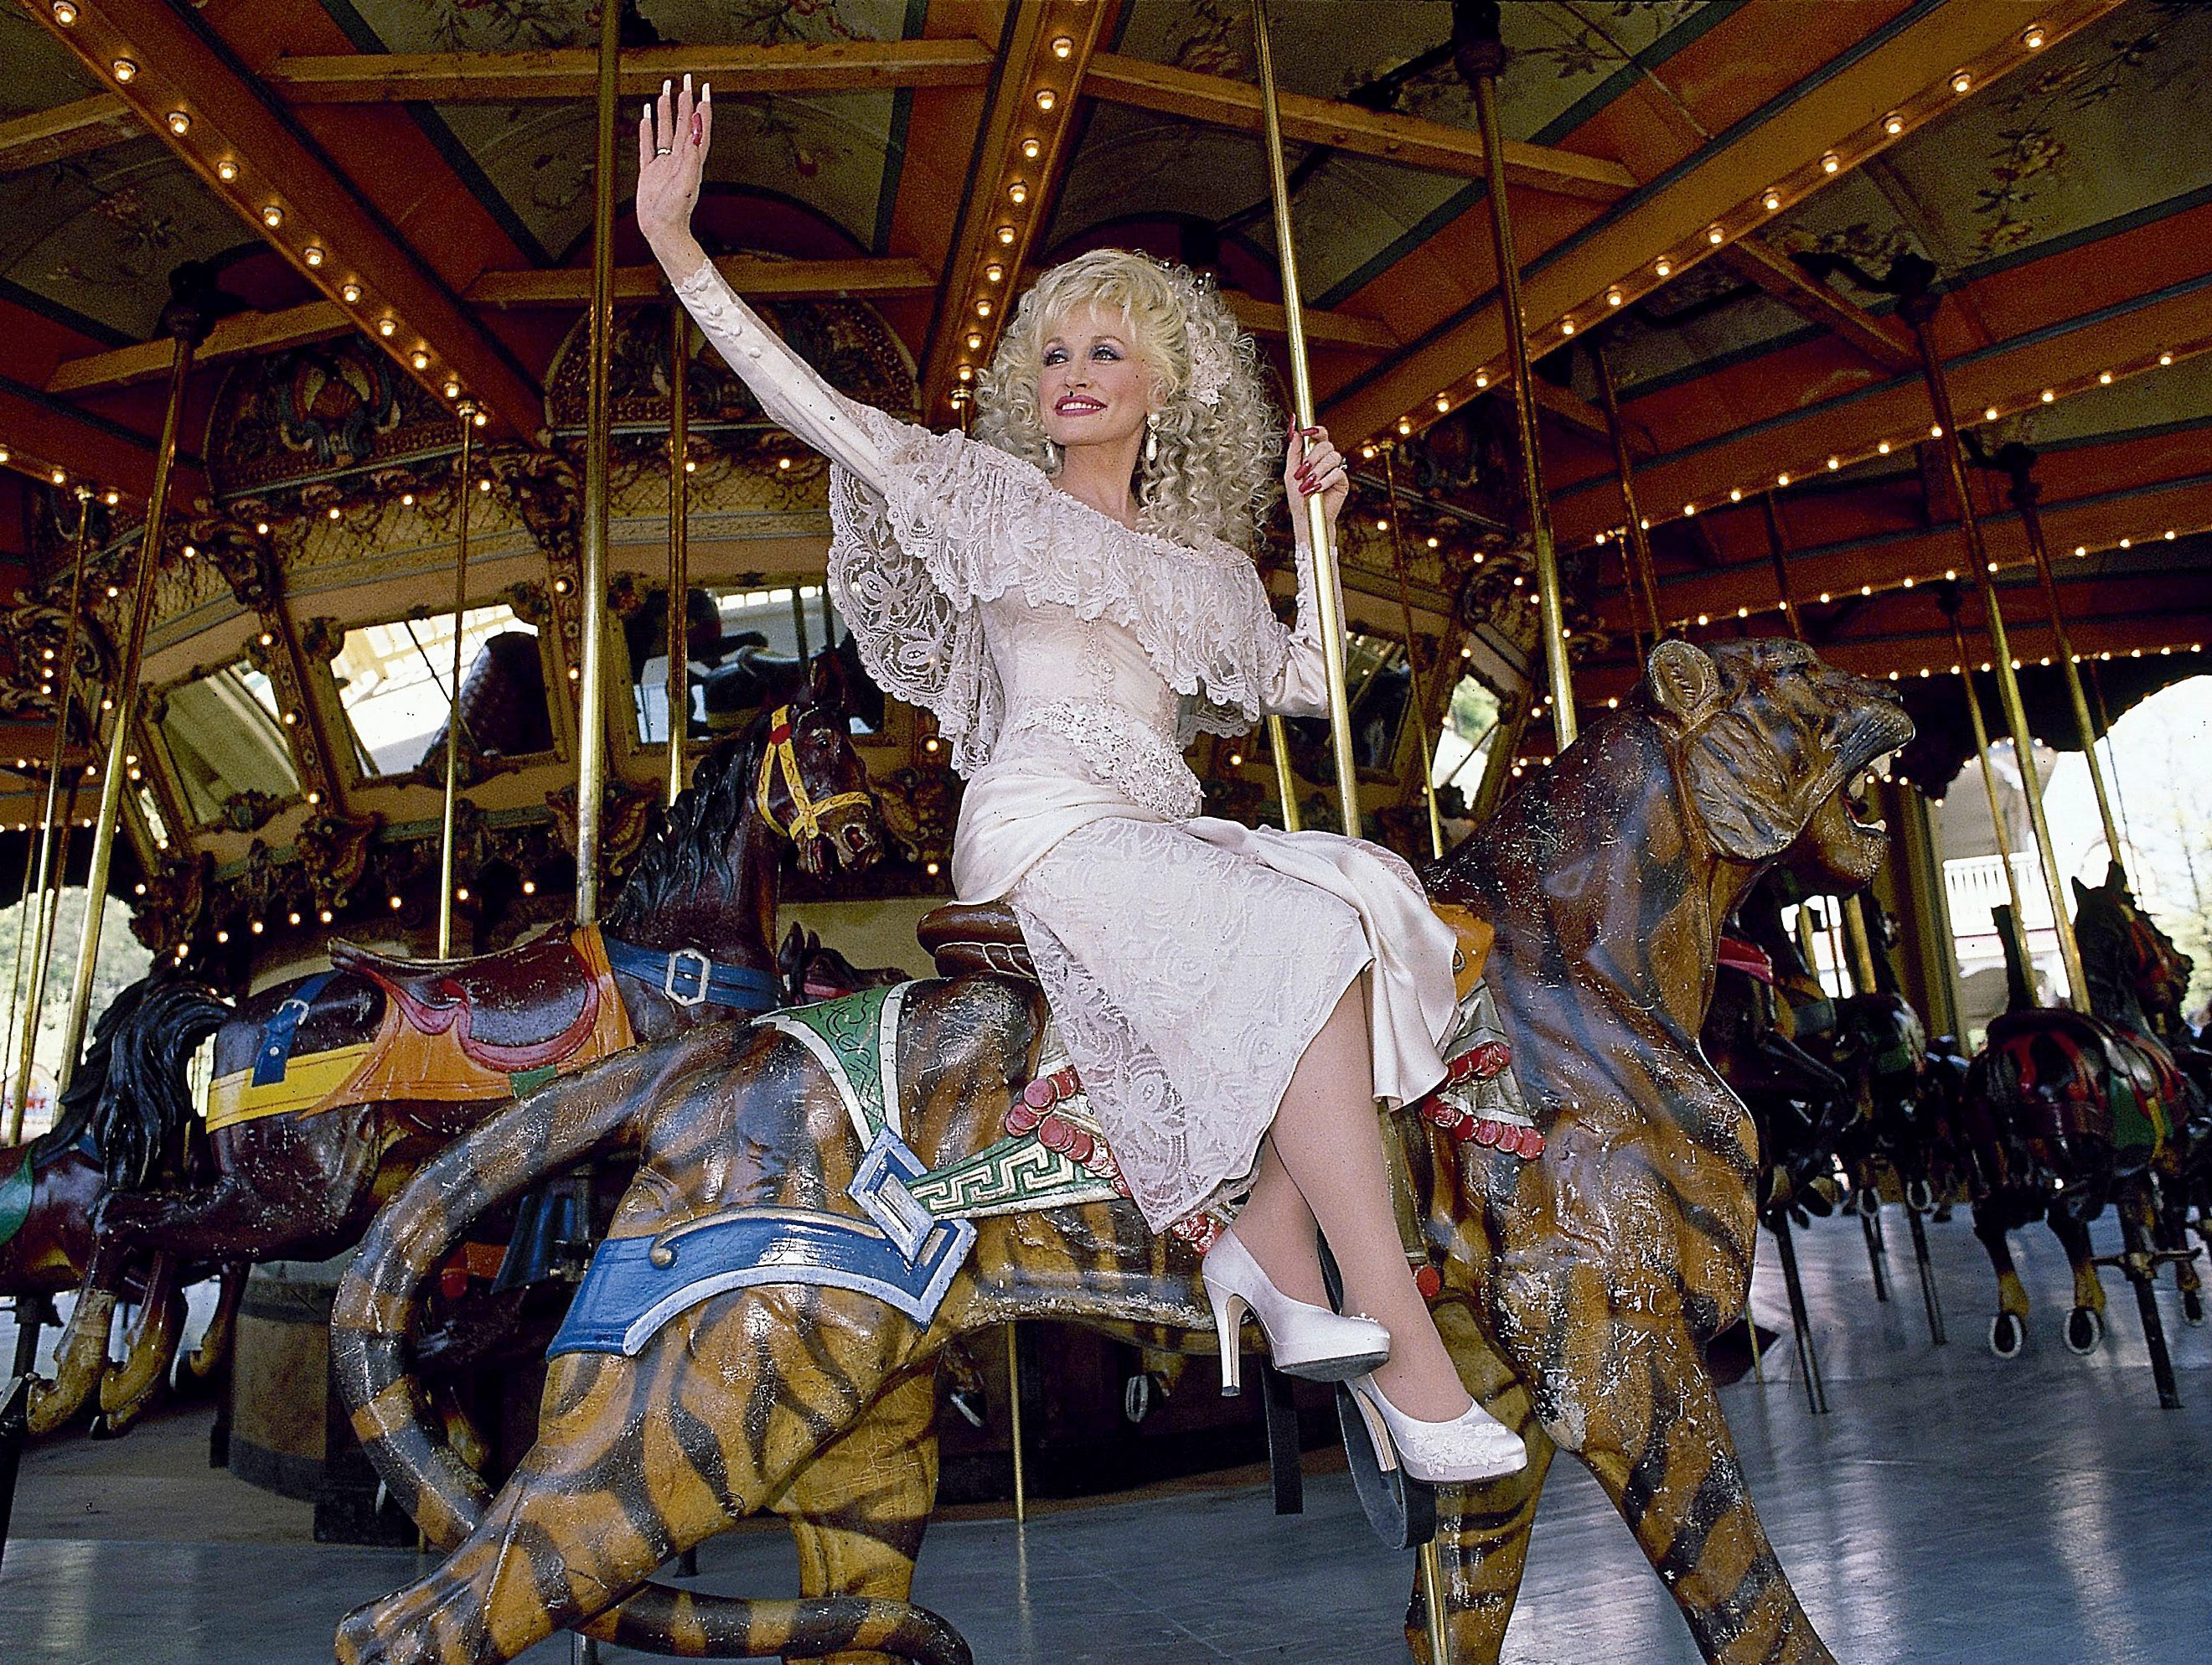 Dolly Parton opens Dollywood for a new season April 27, 1990 with a ride on the carousel.